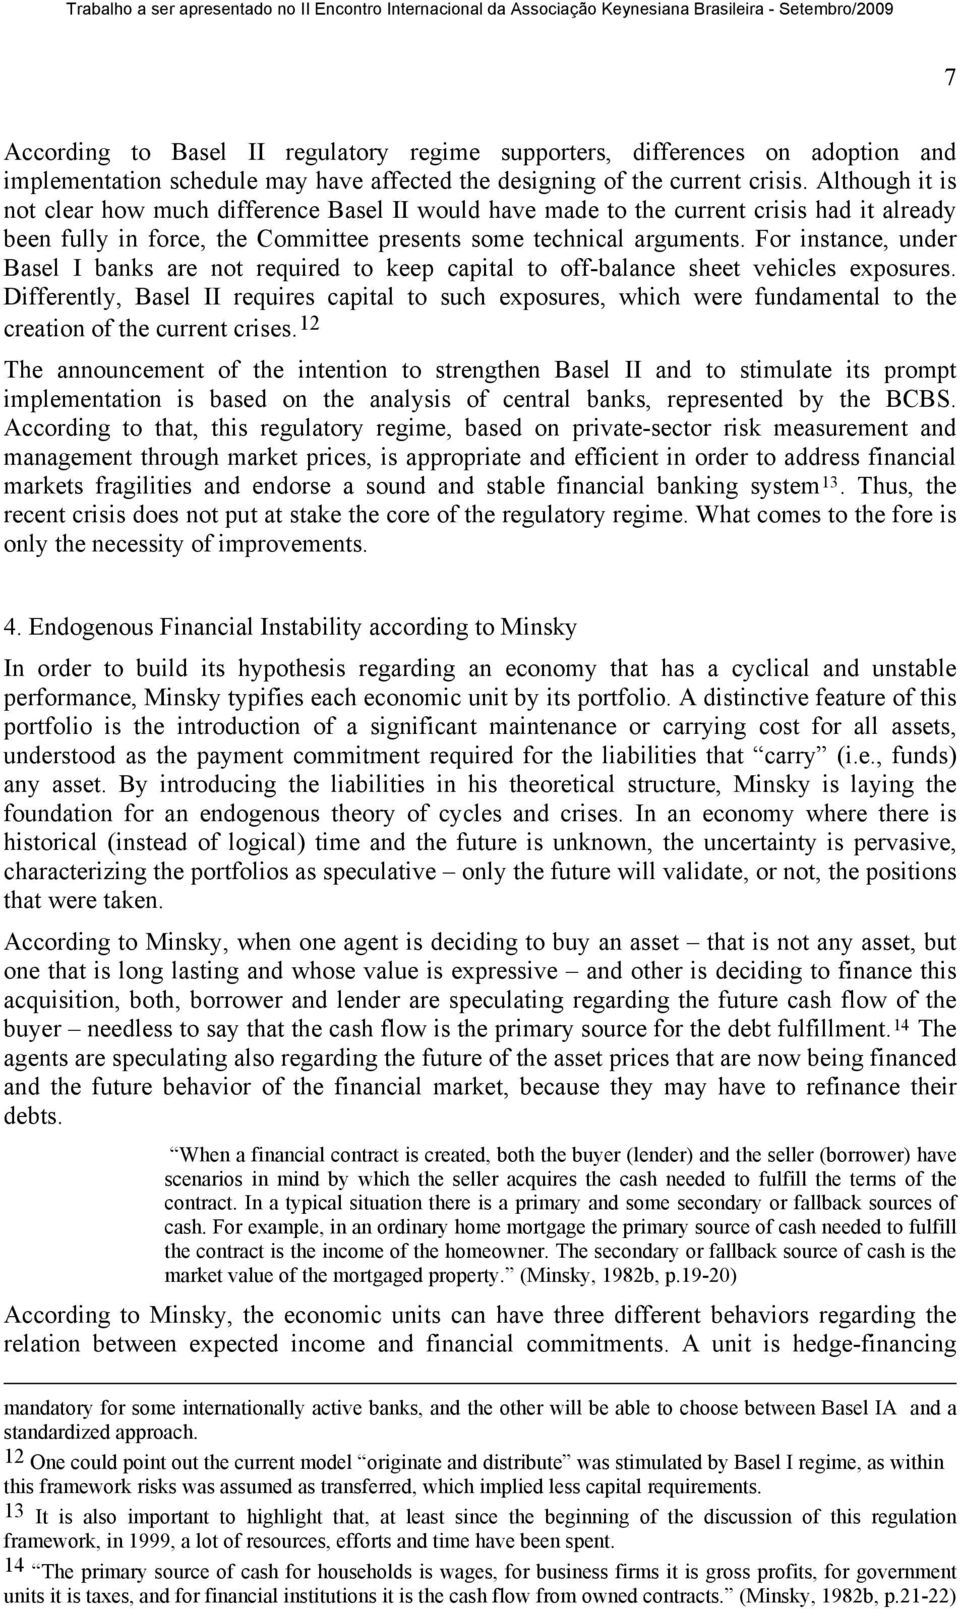 For instance, under Basel I banks are not required to keep capital to off-balance sheet vehicles exposures.